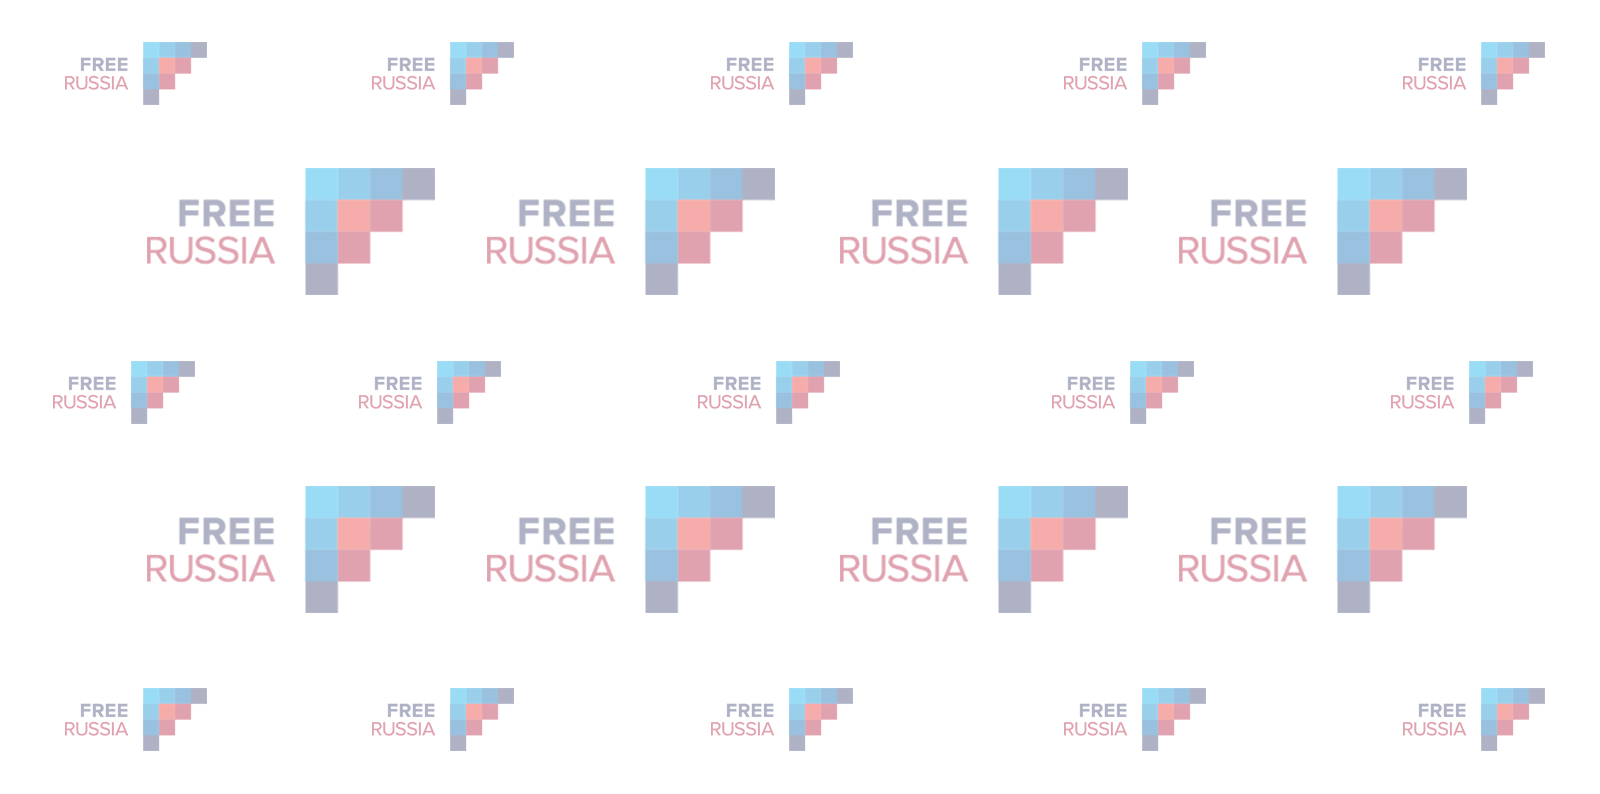 War In Ukraine Free Russia Foundation